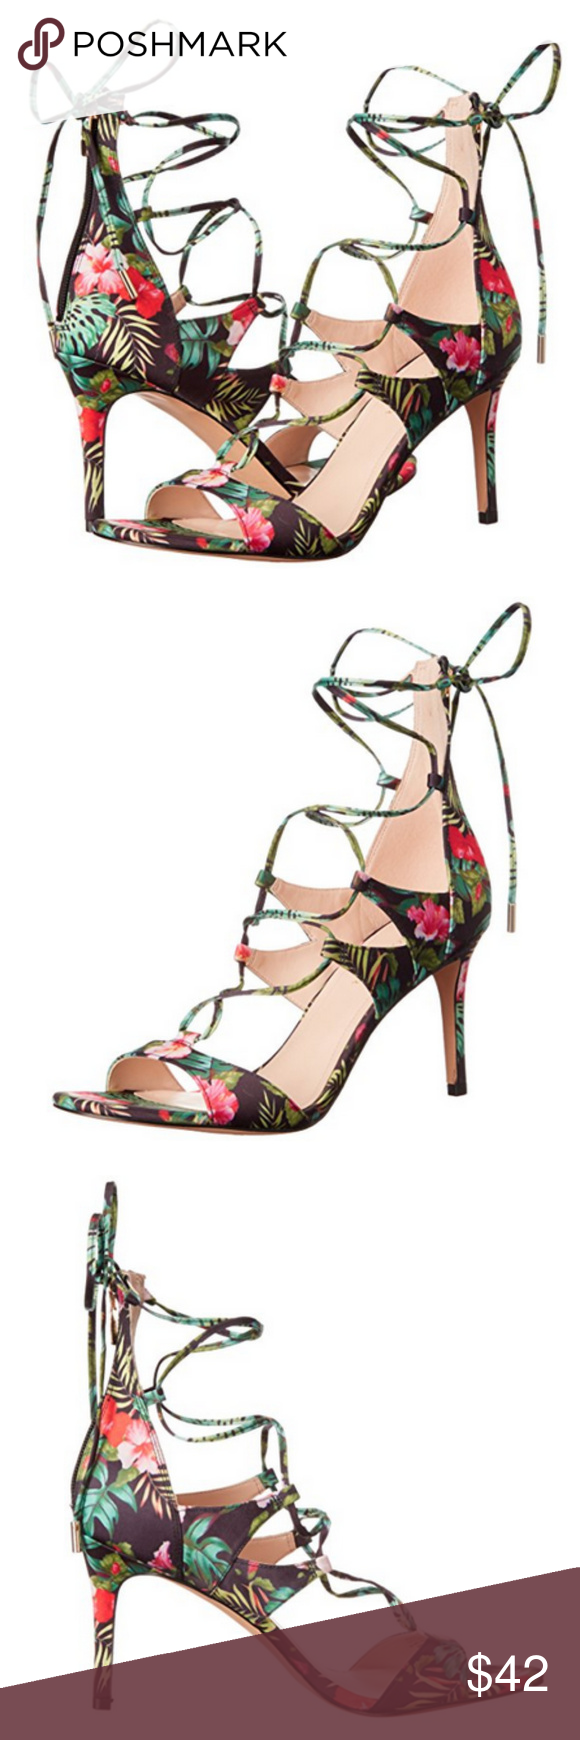 "MARC FISHER Dress Sandals Laceup "" MARC FISHER "" Fabric"